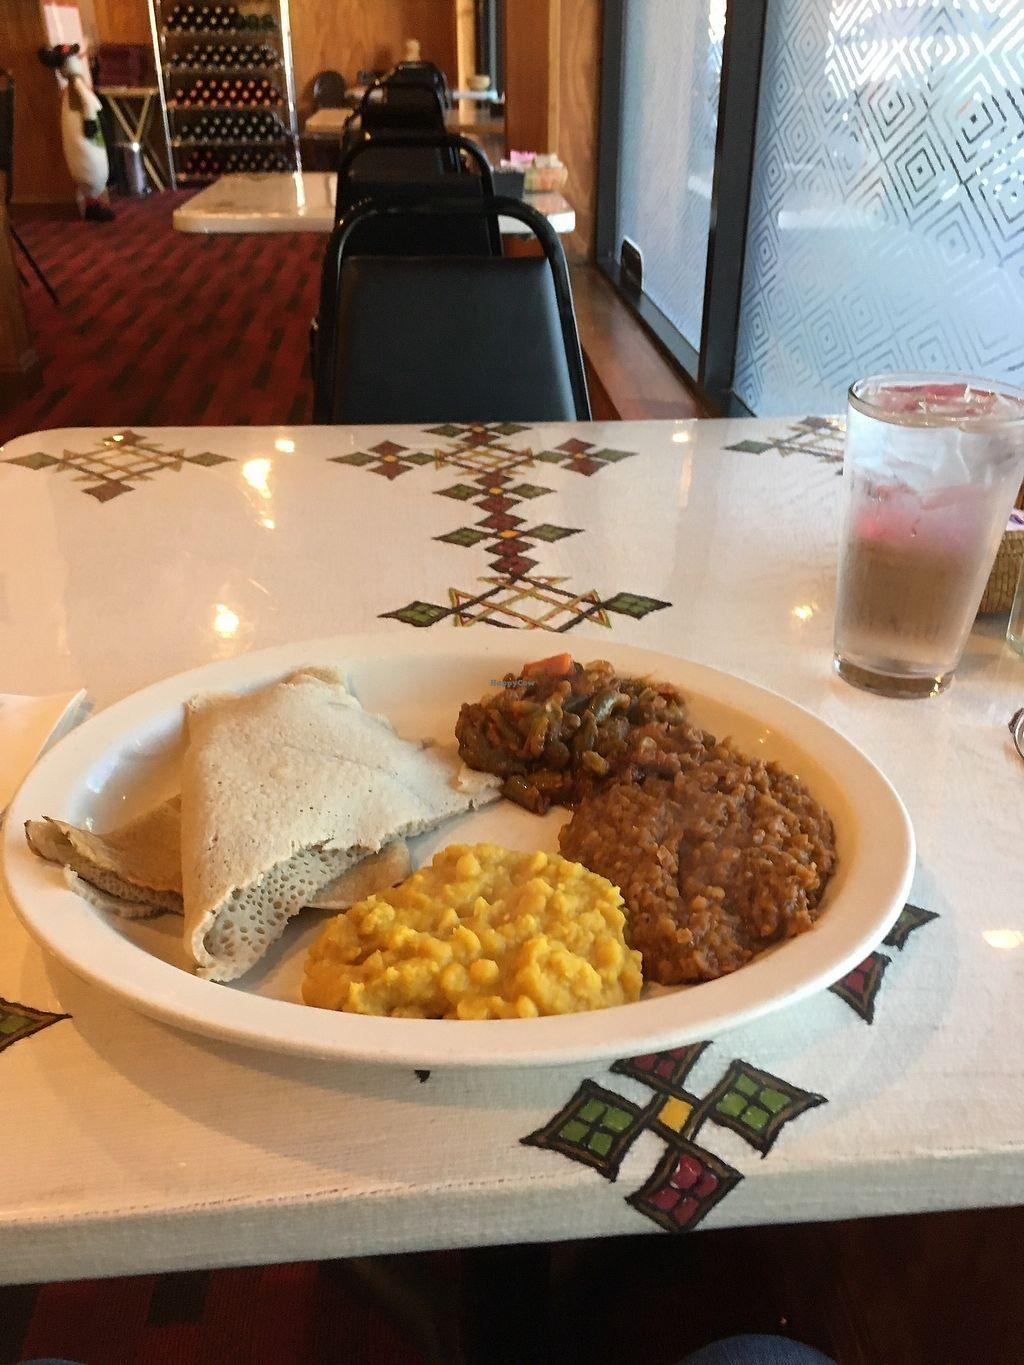 """Photo of Cafe Lalibela  by <a href=""""/members/profile/LarriRogers"""">LarriRogers</a> <br/>Lunch <br/> March 6, 2018  - <a href='/contact/abuse/image/5604/367538'>Report</a>"""